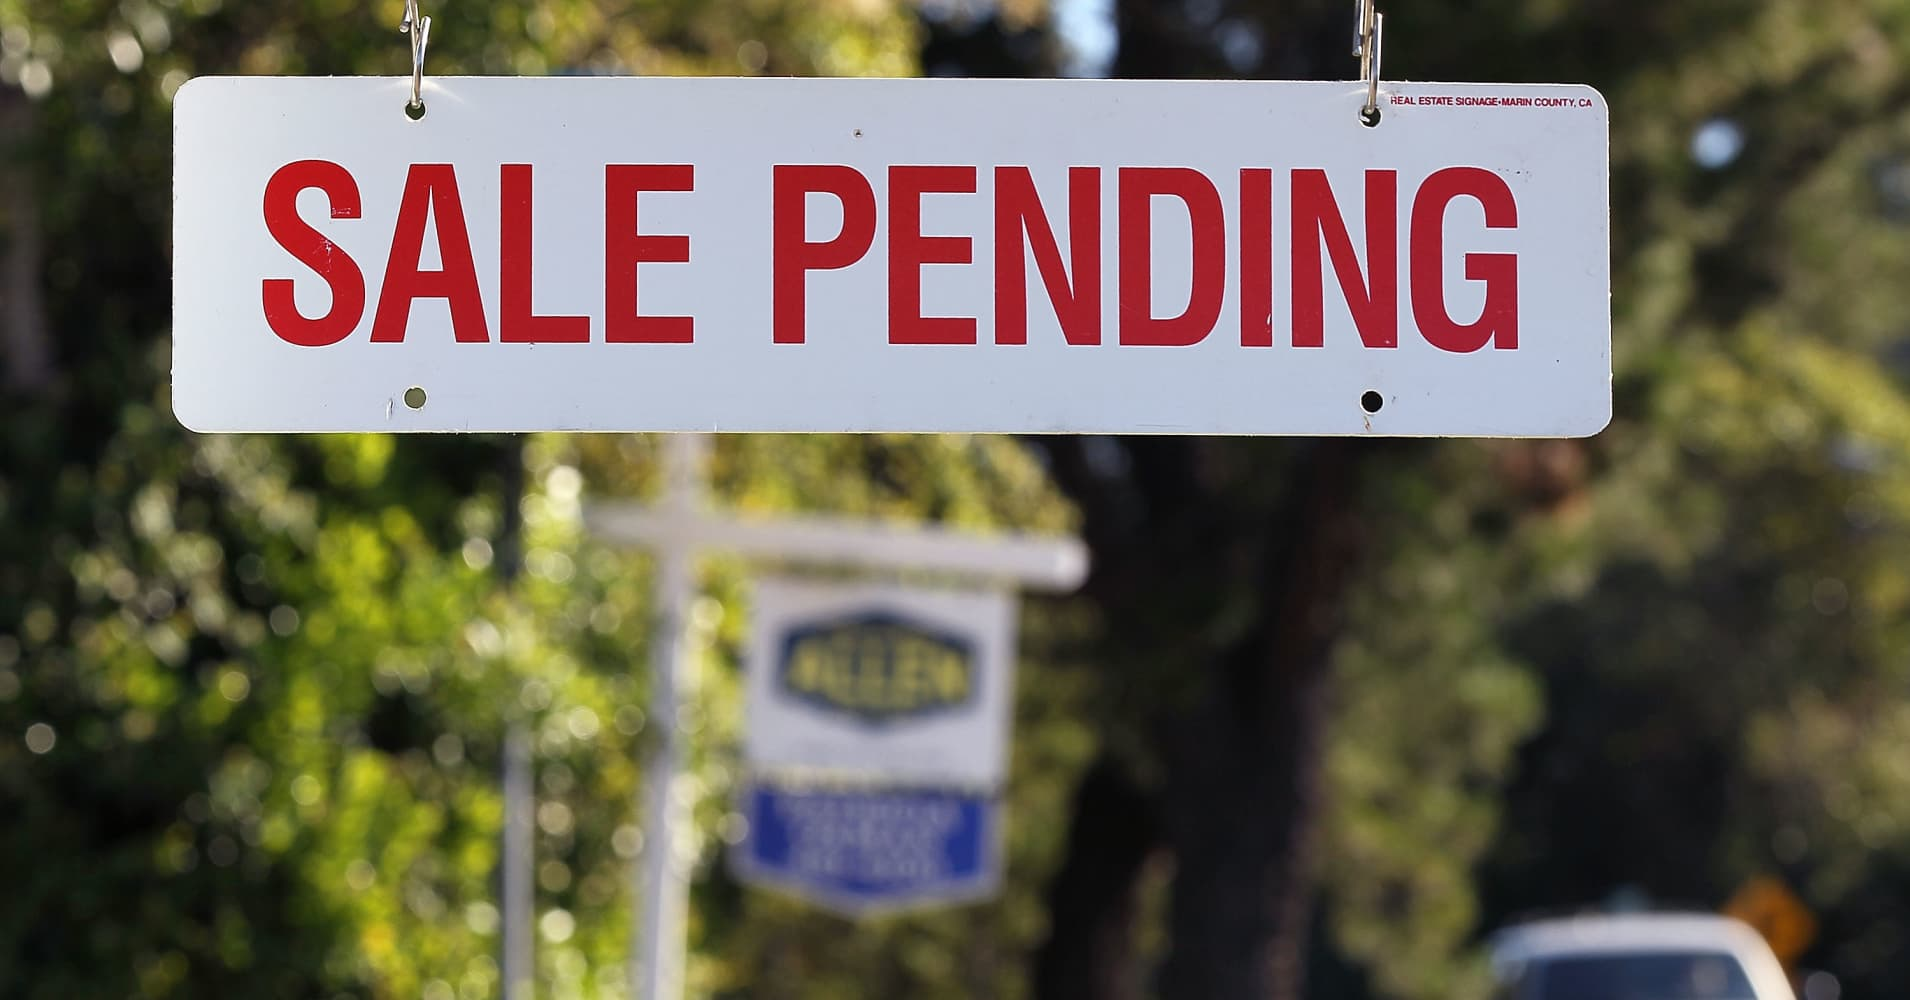 Home sales fall for 8th straight month in February